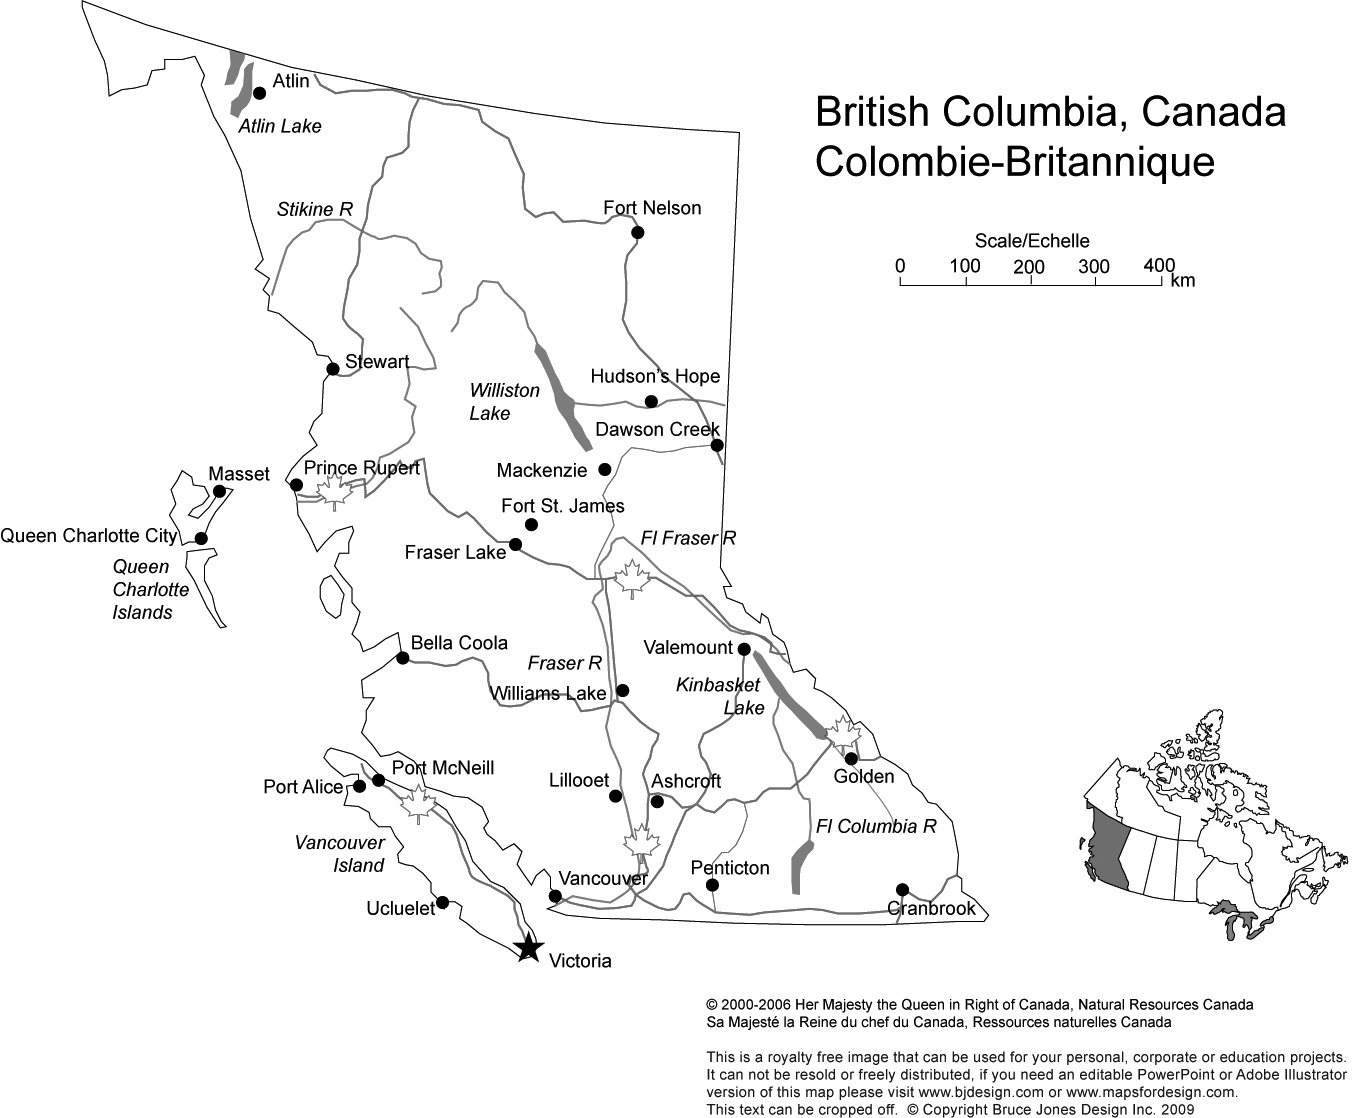 Canada And Provinces Printable, Blank Maps, Royalty Free, Canadian - Free Printable Map Of Canada